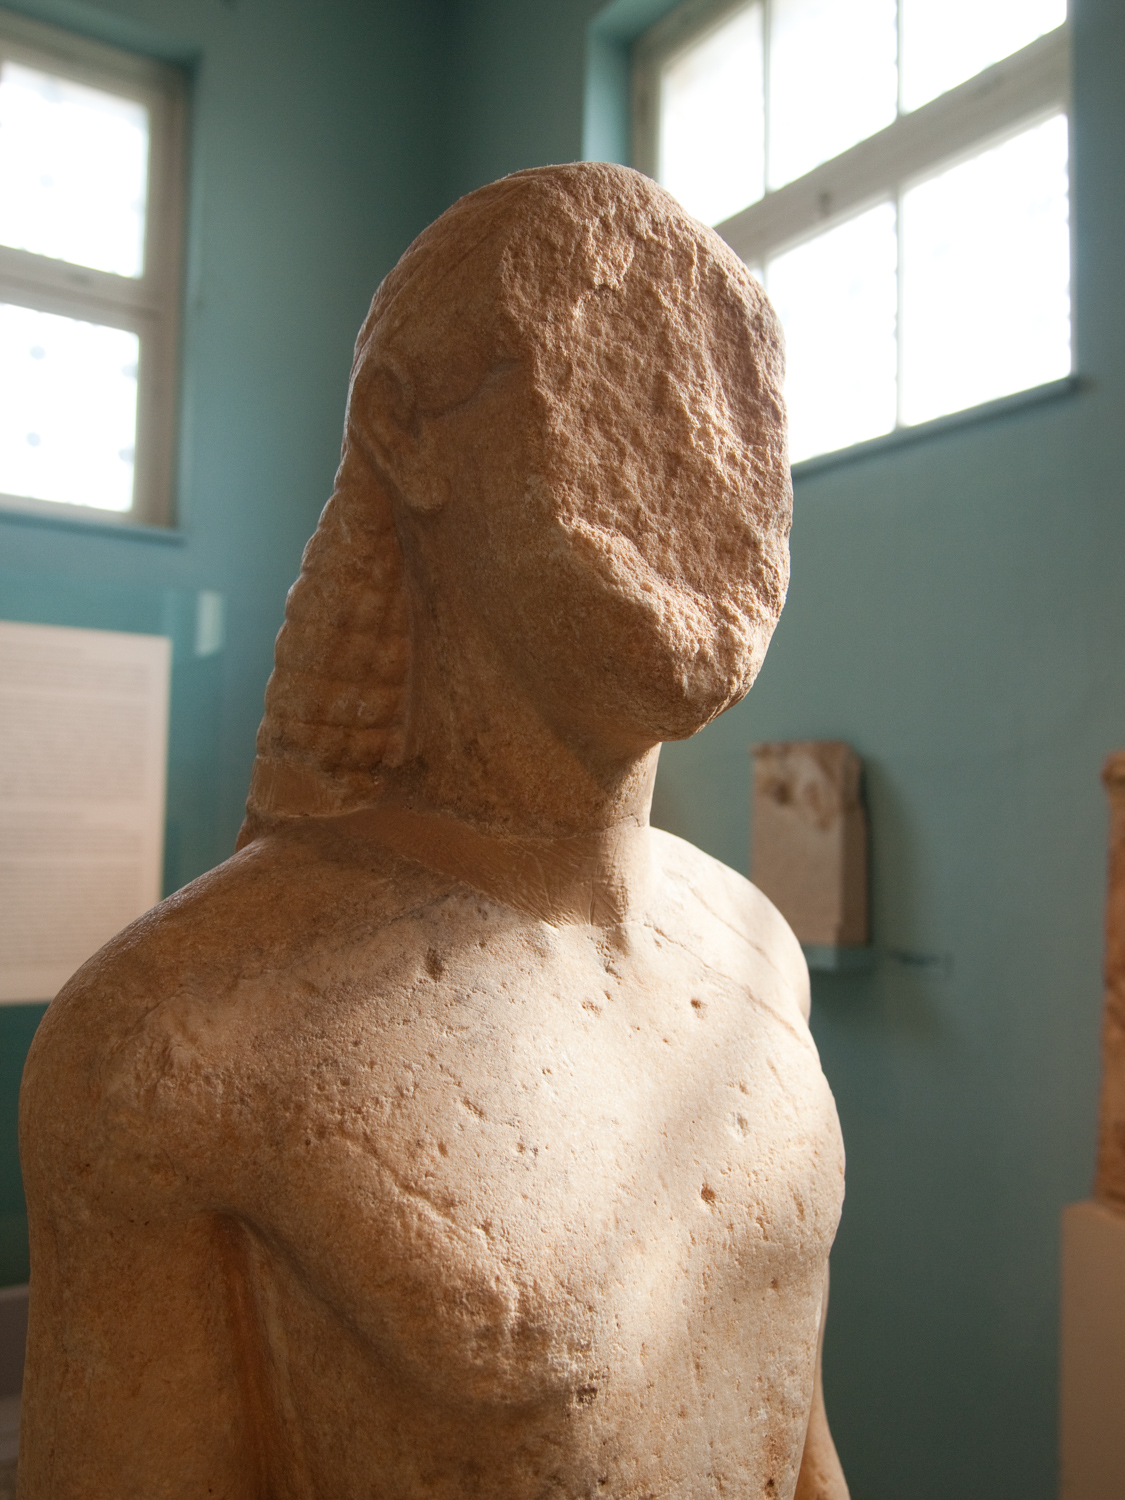 Kouros at the Archaeological Museum of Eleusis.